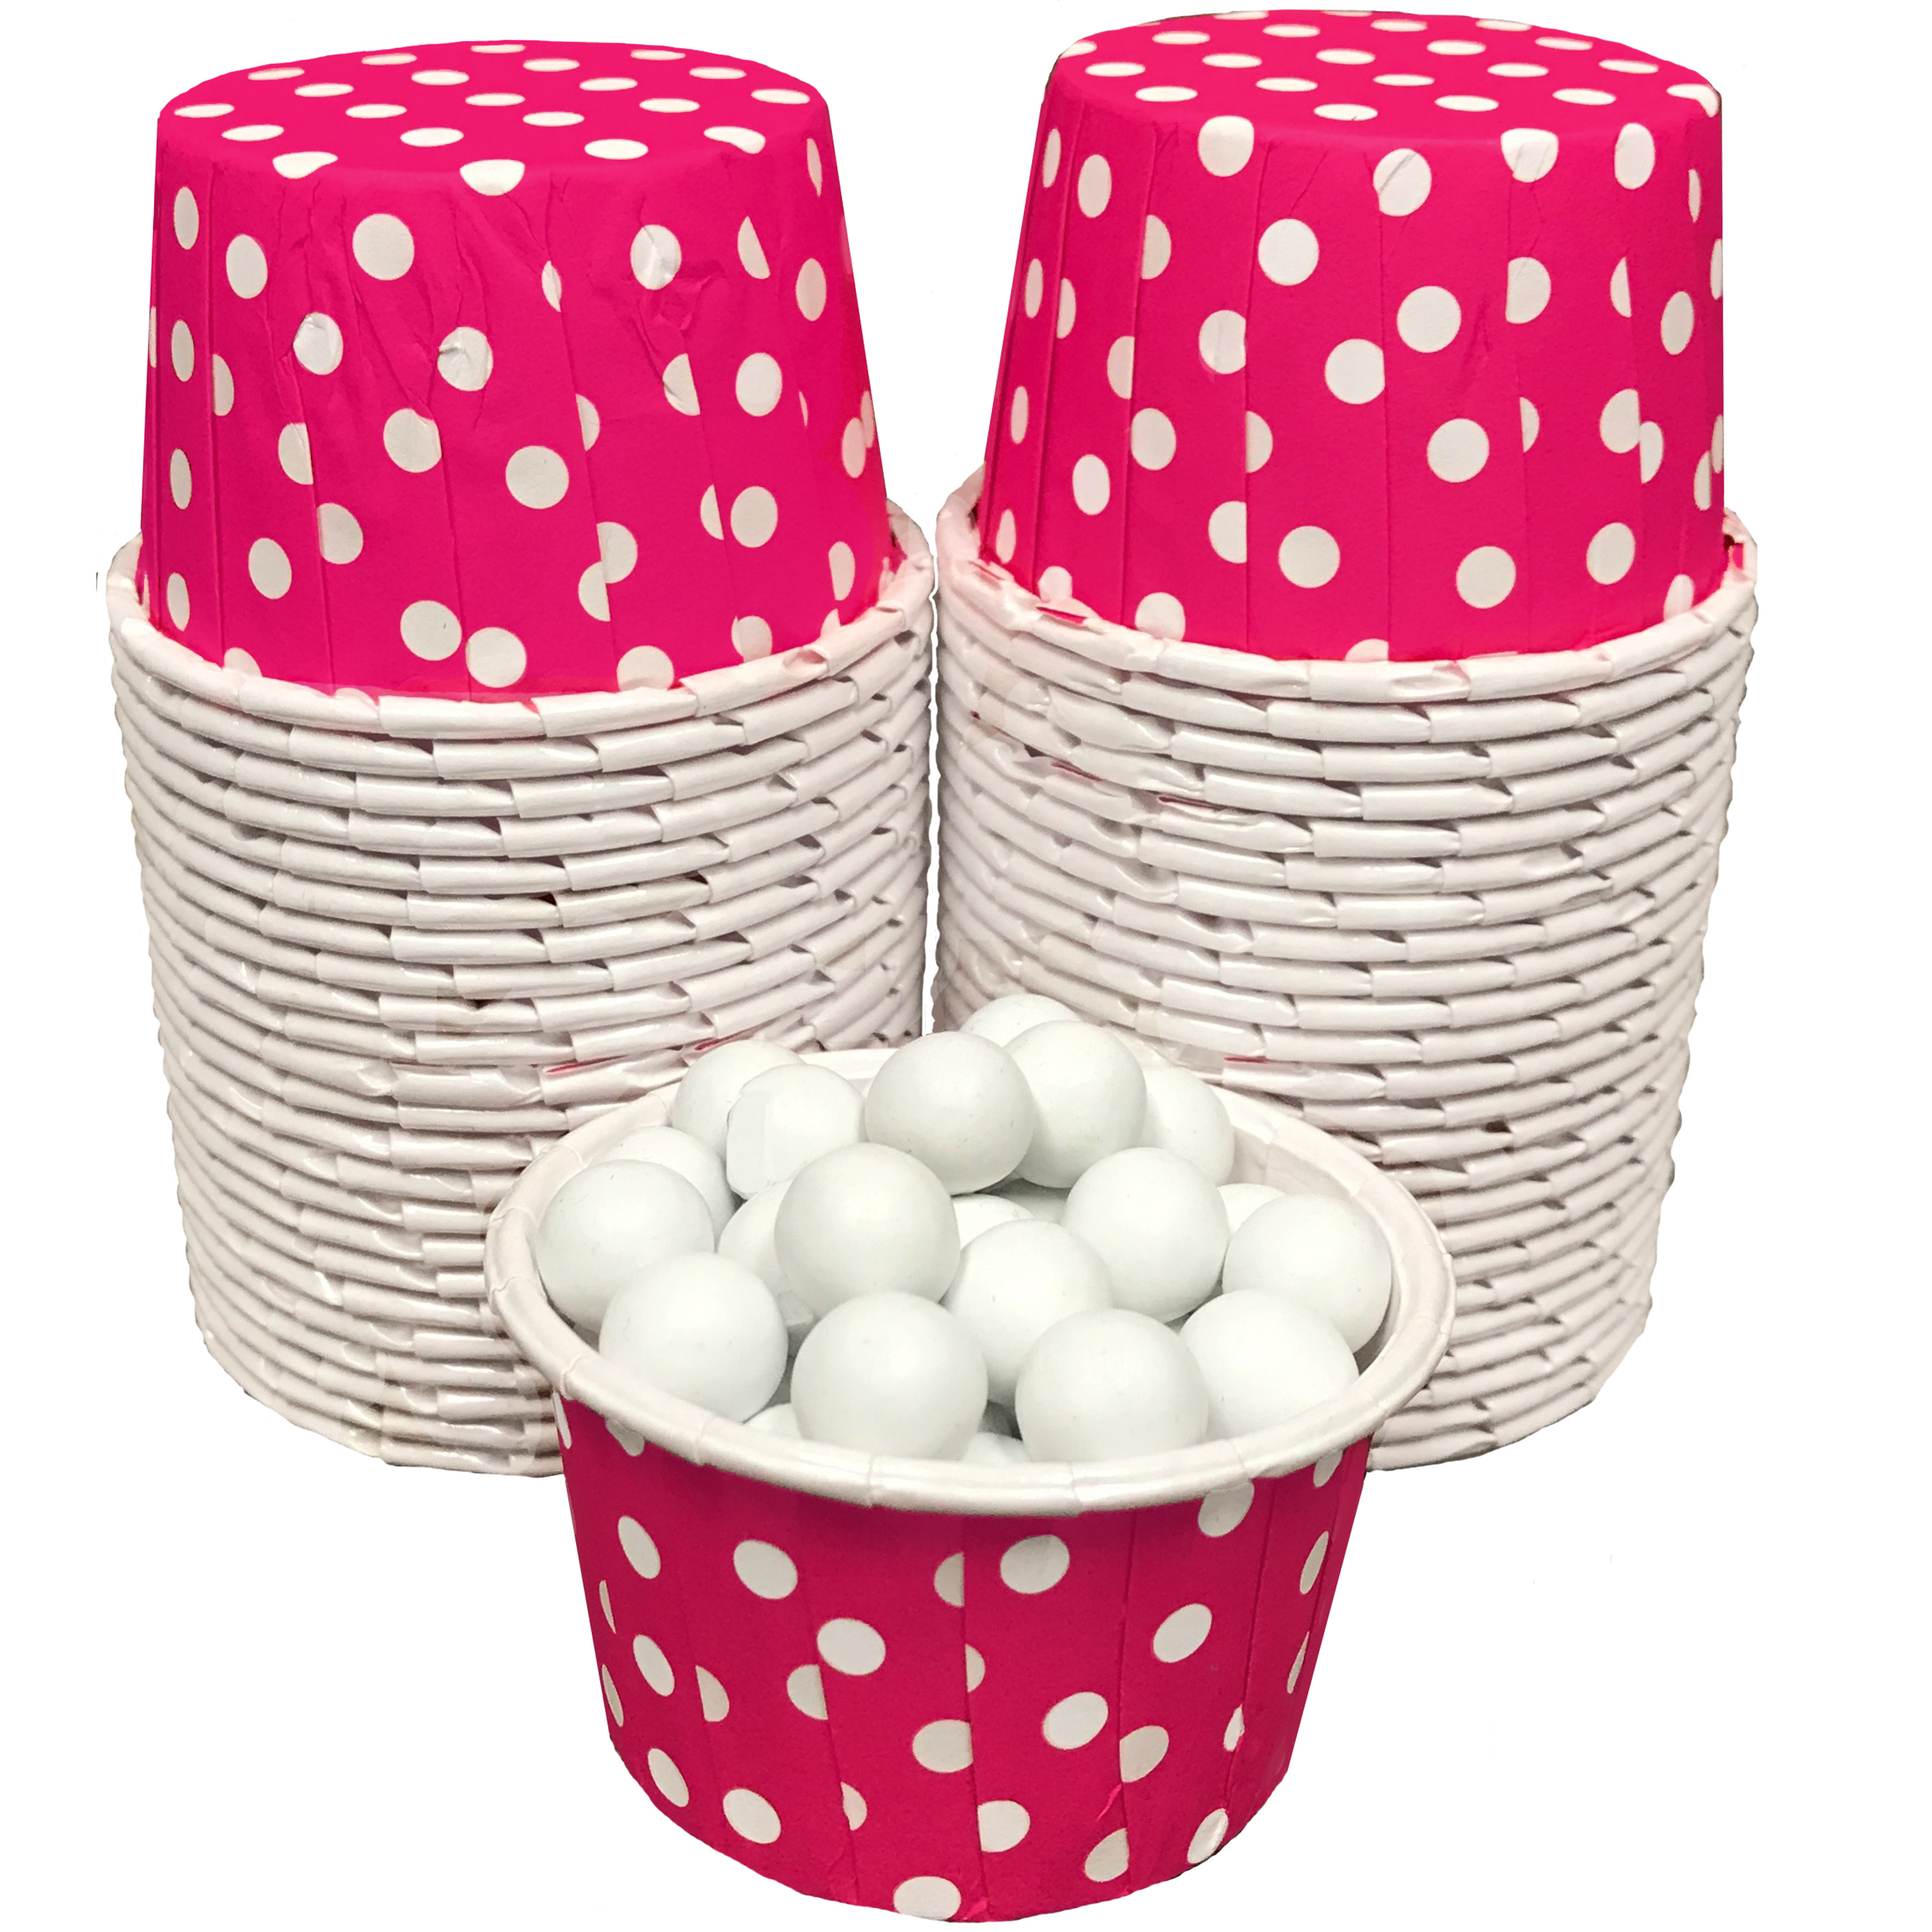 Hot Pink and White Polka Dot Candy/Nut  Paper Baking Cups 48 Pk